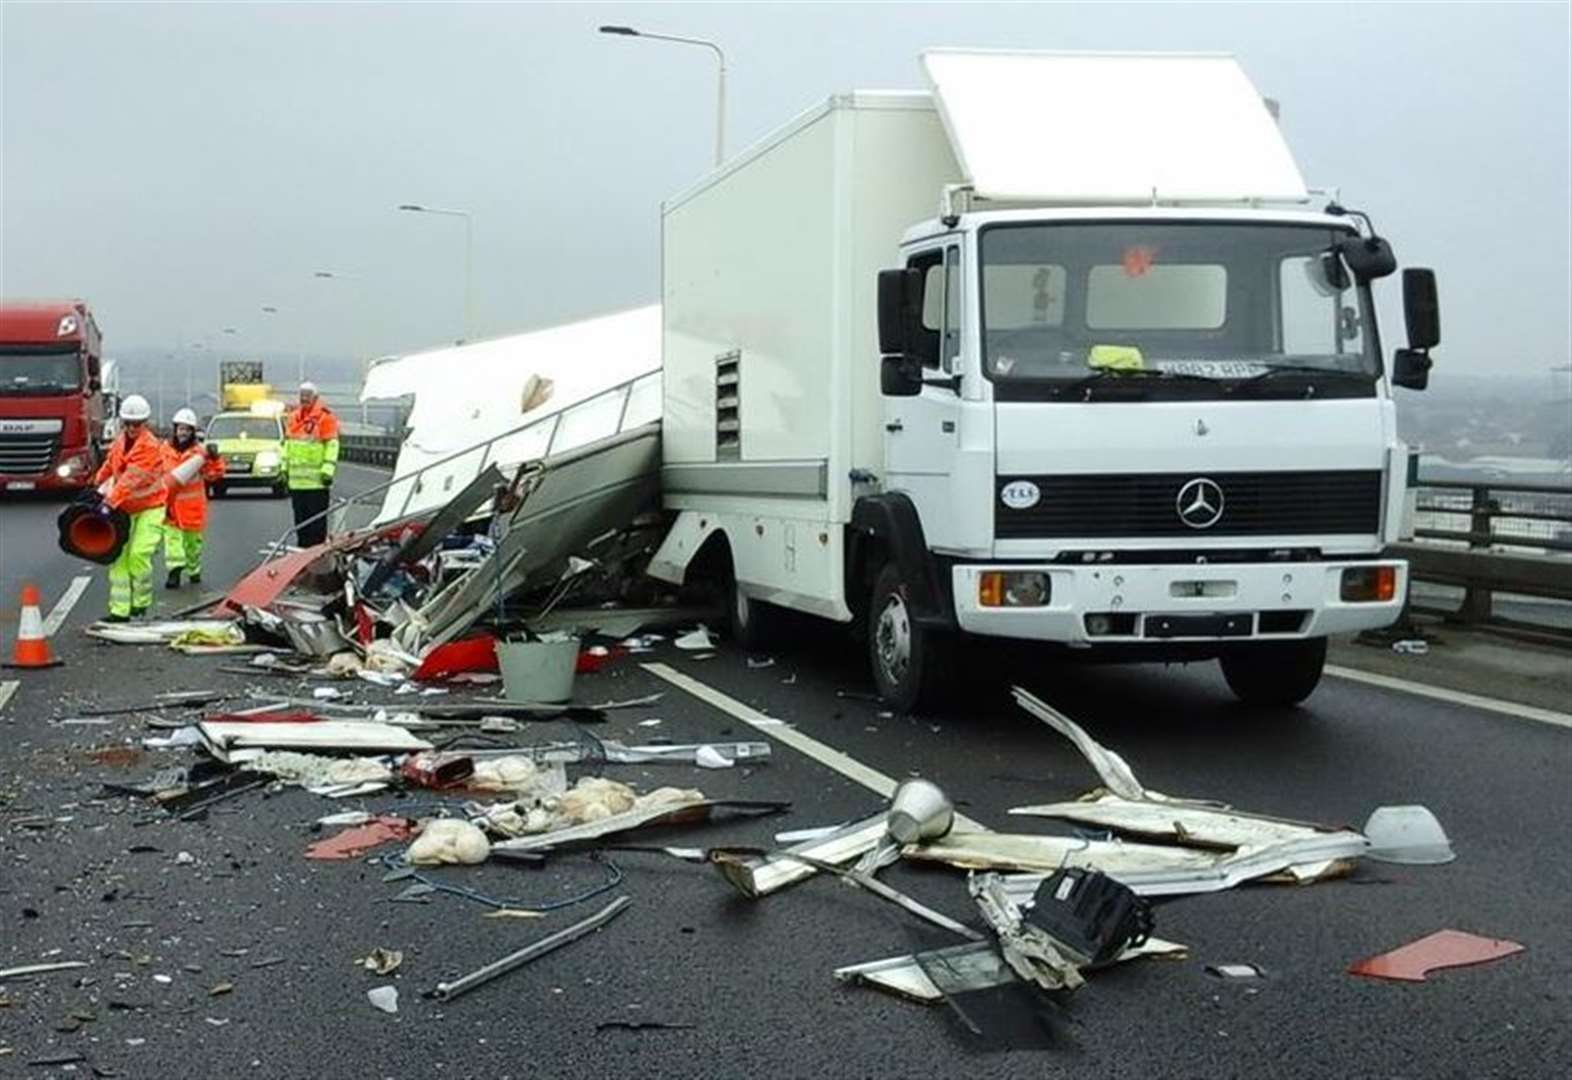 Bridge delays after lorry crash